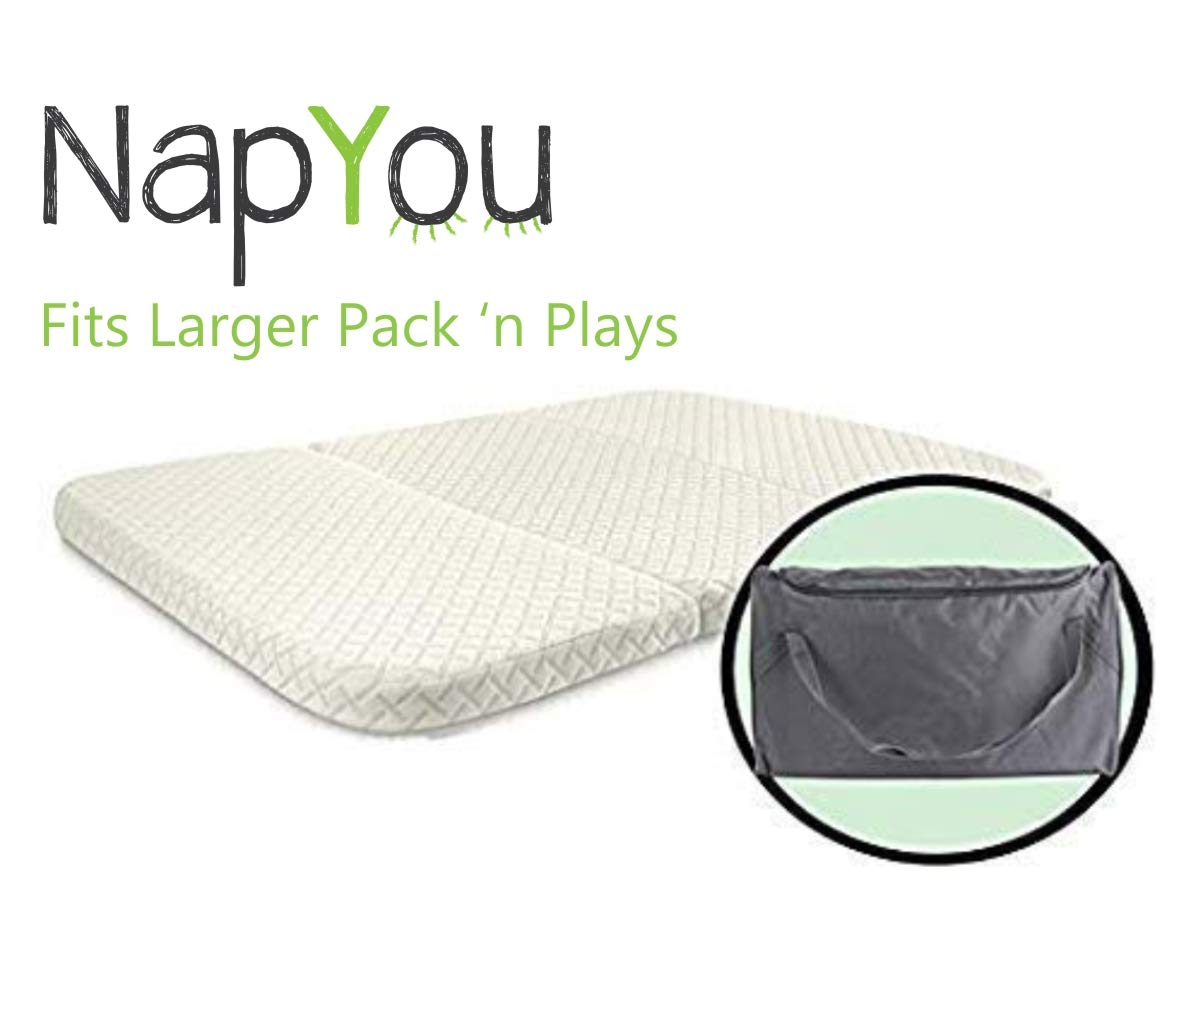 NapYou Amazon Exclusive Pack n Play Mattress, Convenient Fold with Bonus Easy Handle Carry Bag - Large Size 28 inches x 40 inches